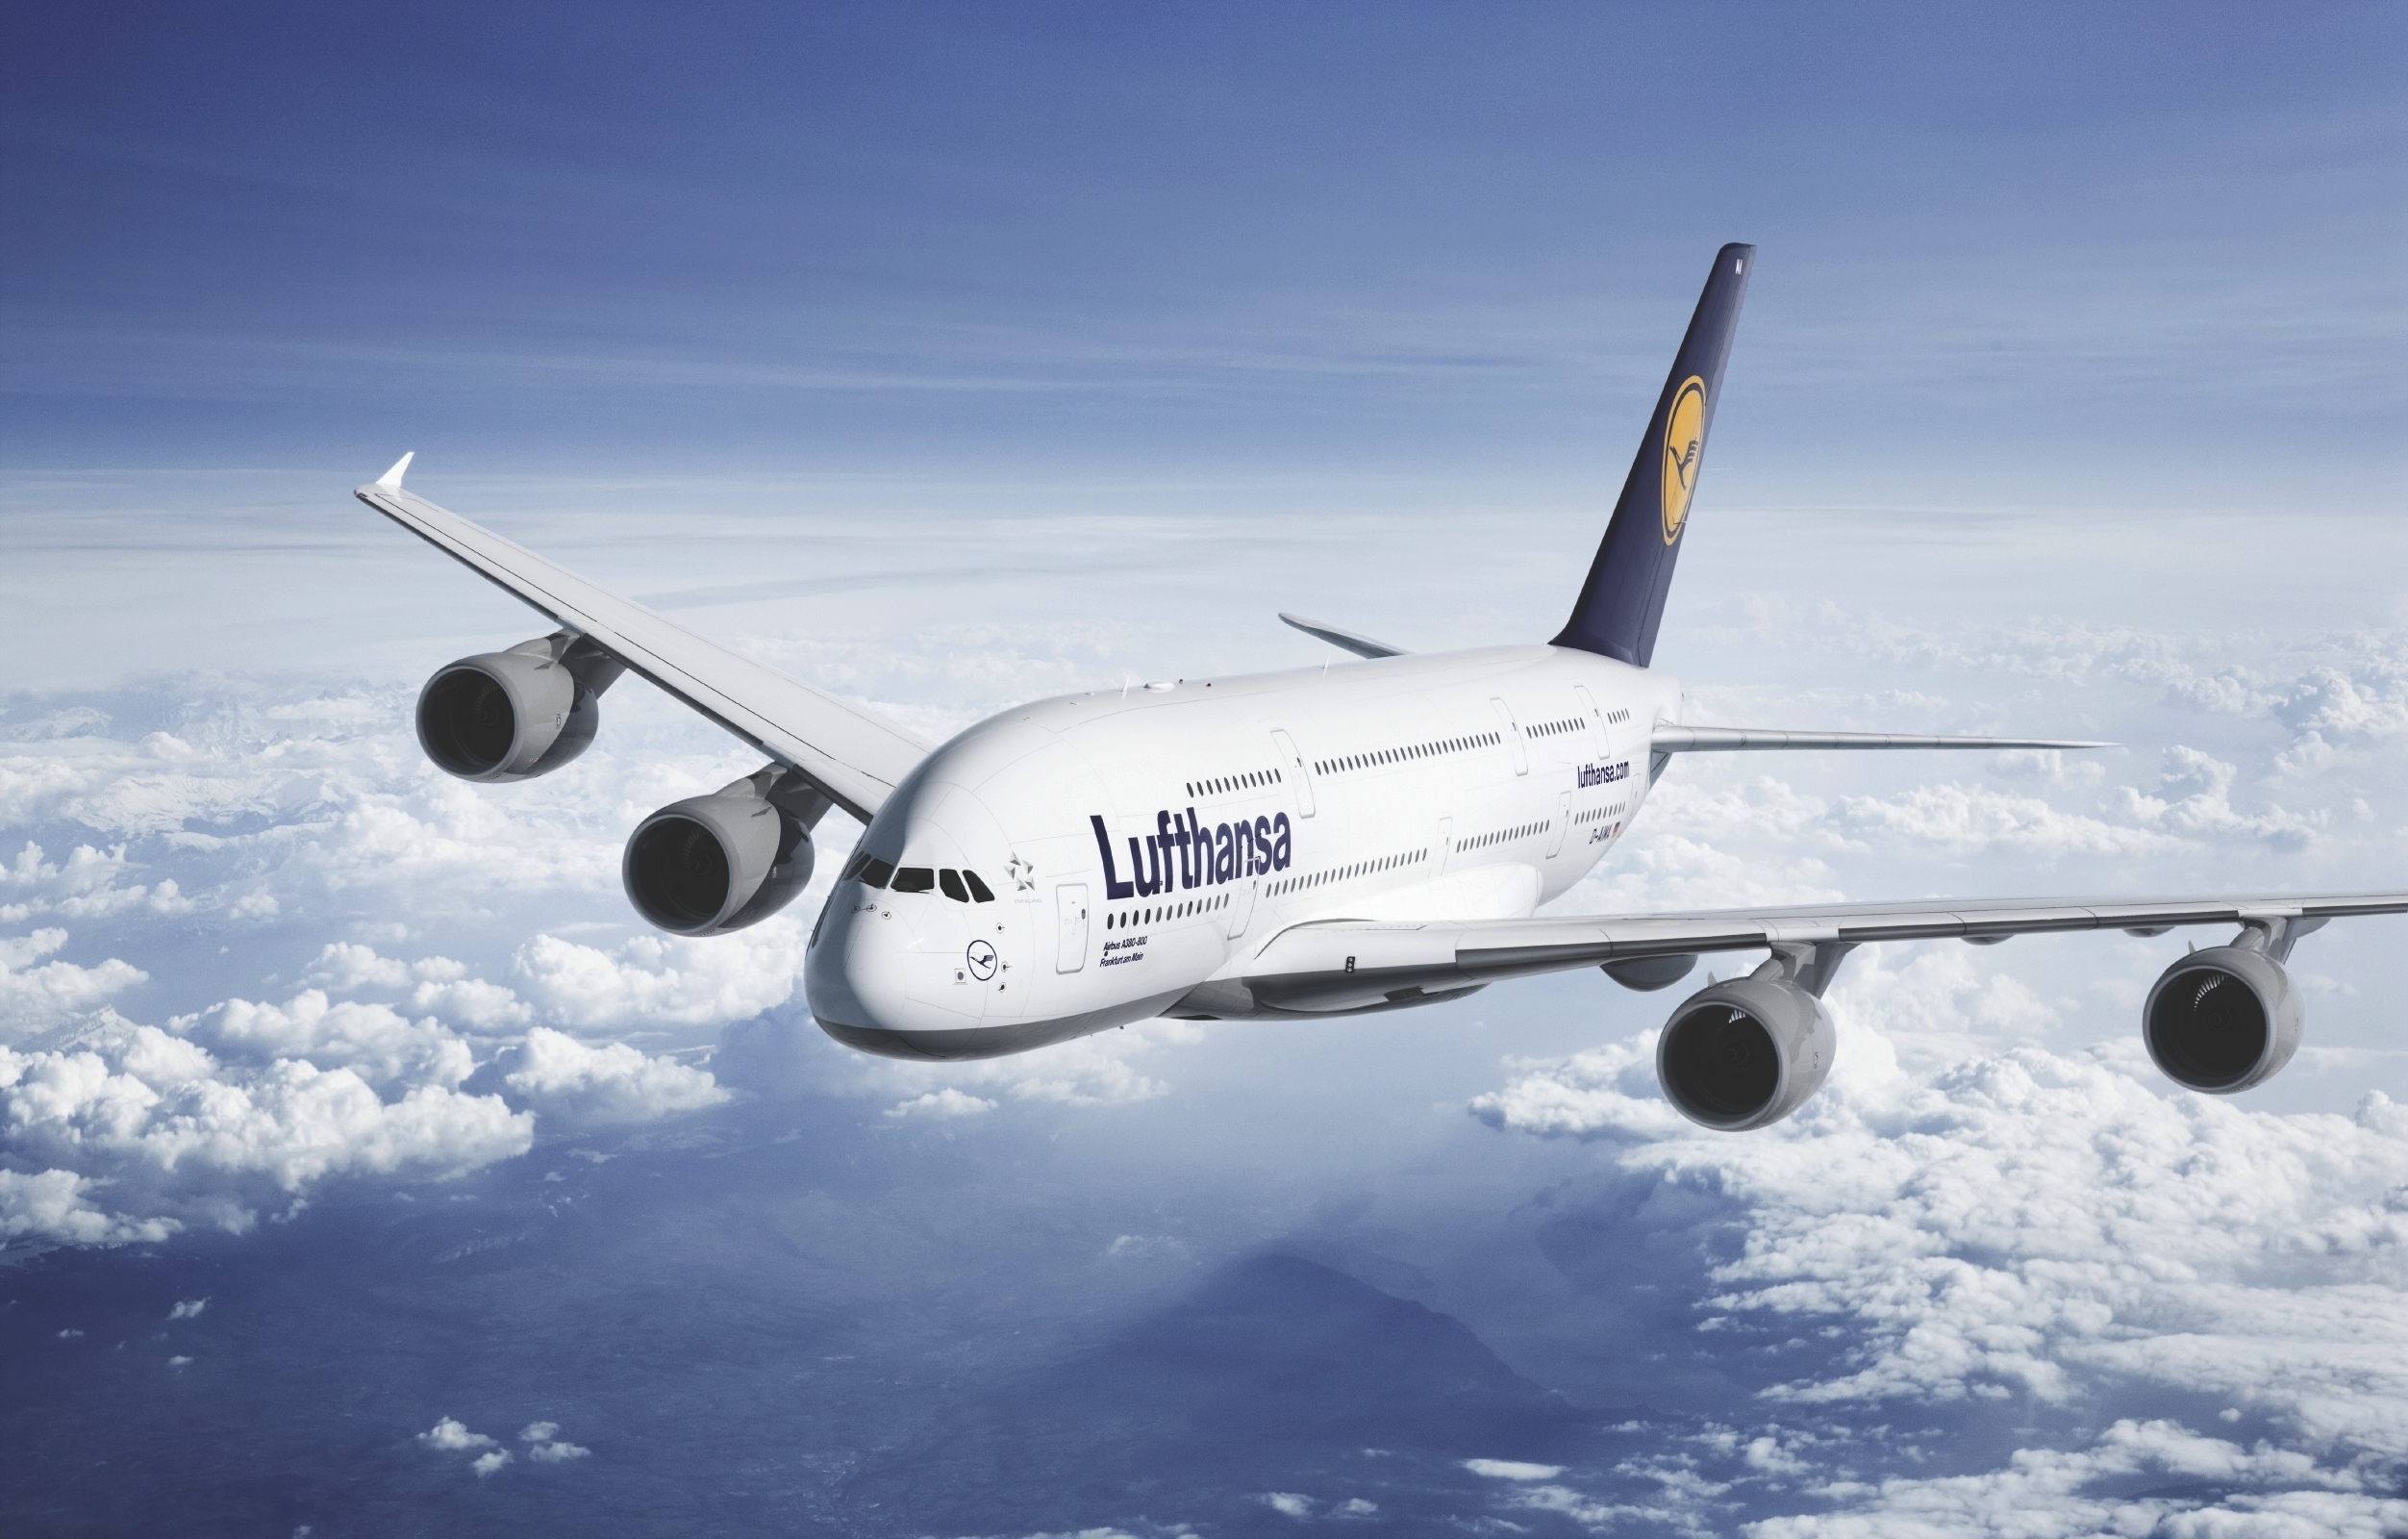 A380 Lufthansa 2504x1600 6107 HD Wallpaper Res 2504x1600 DesktopAS 2504x1600